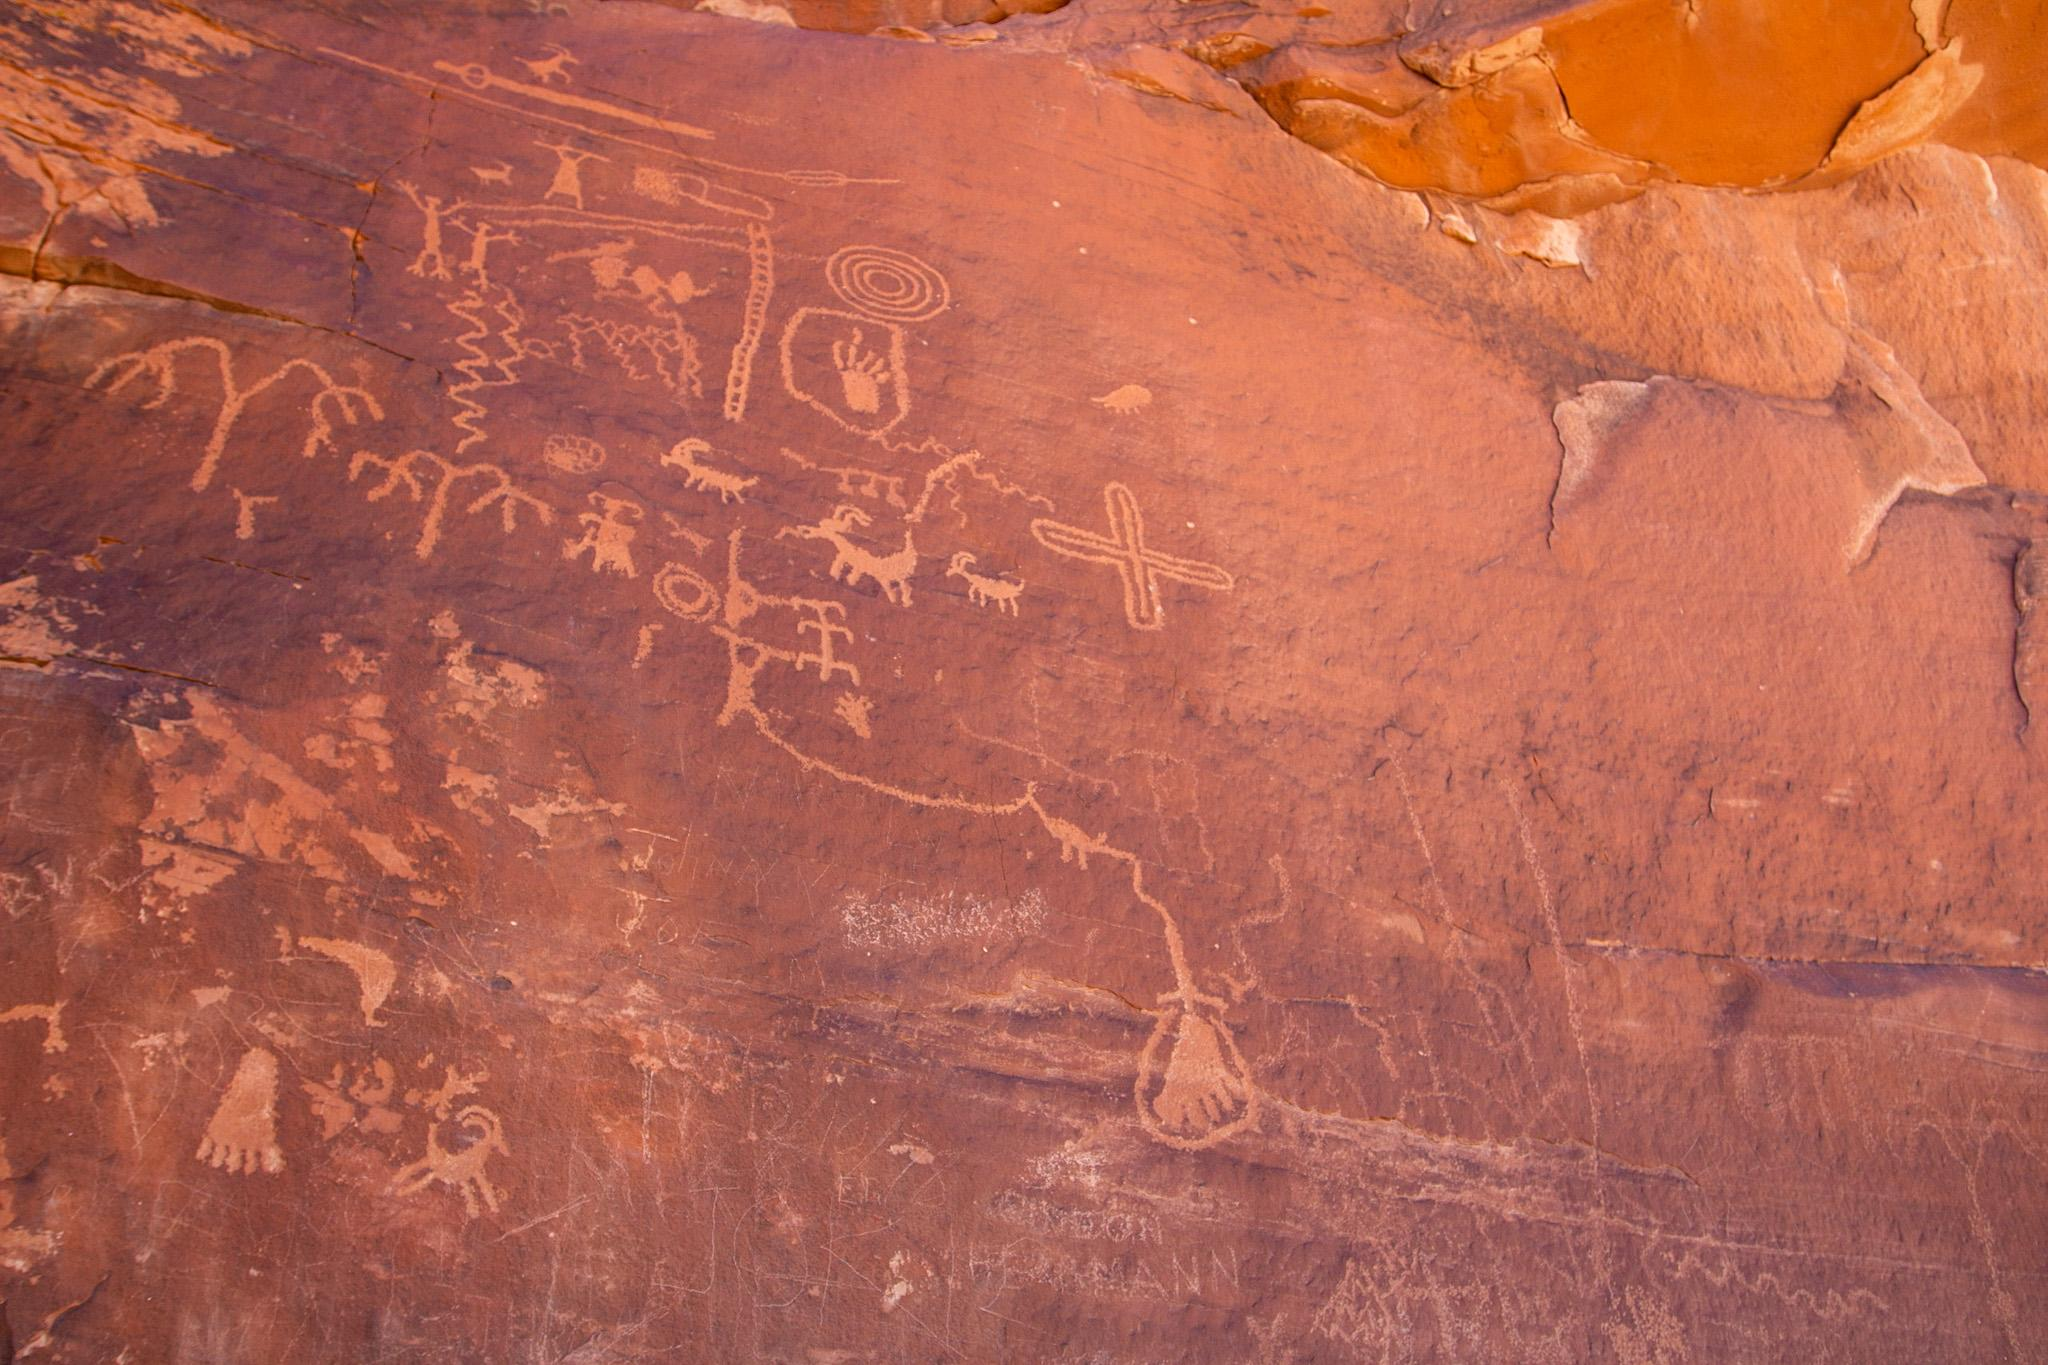 indigenous carvings on stone